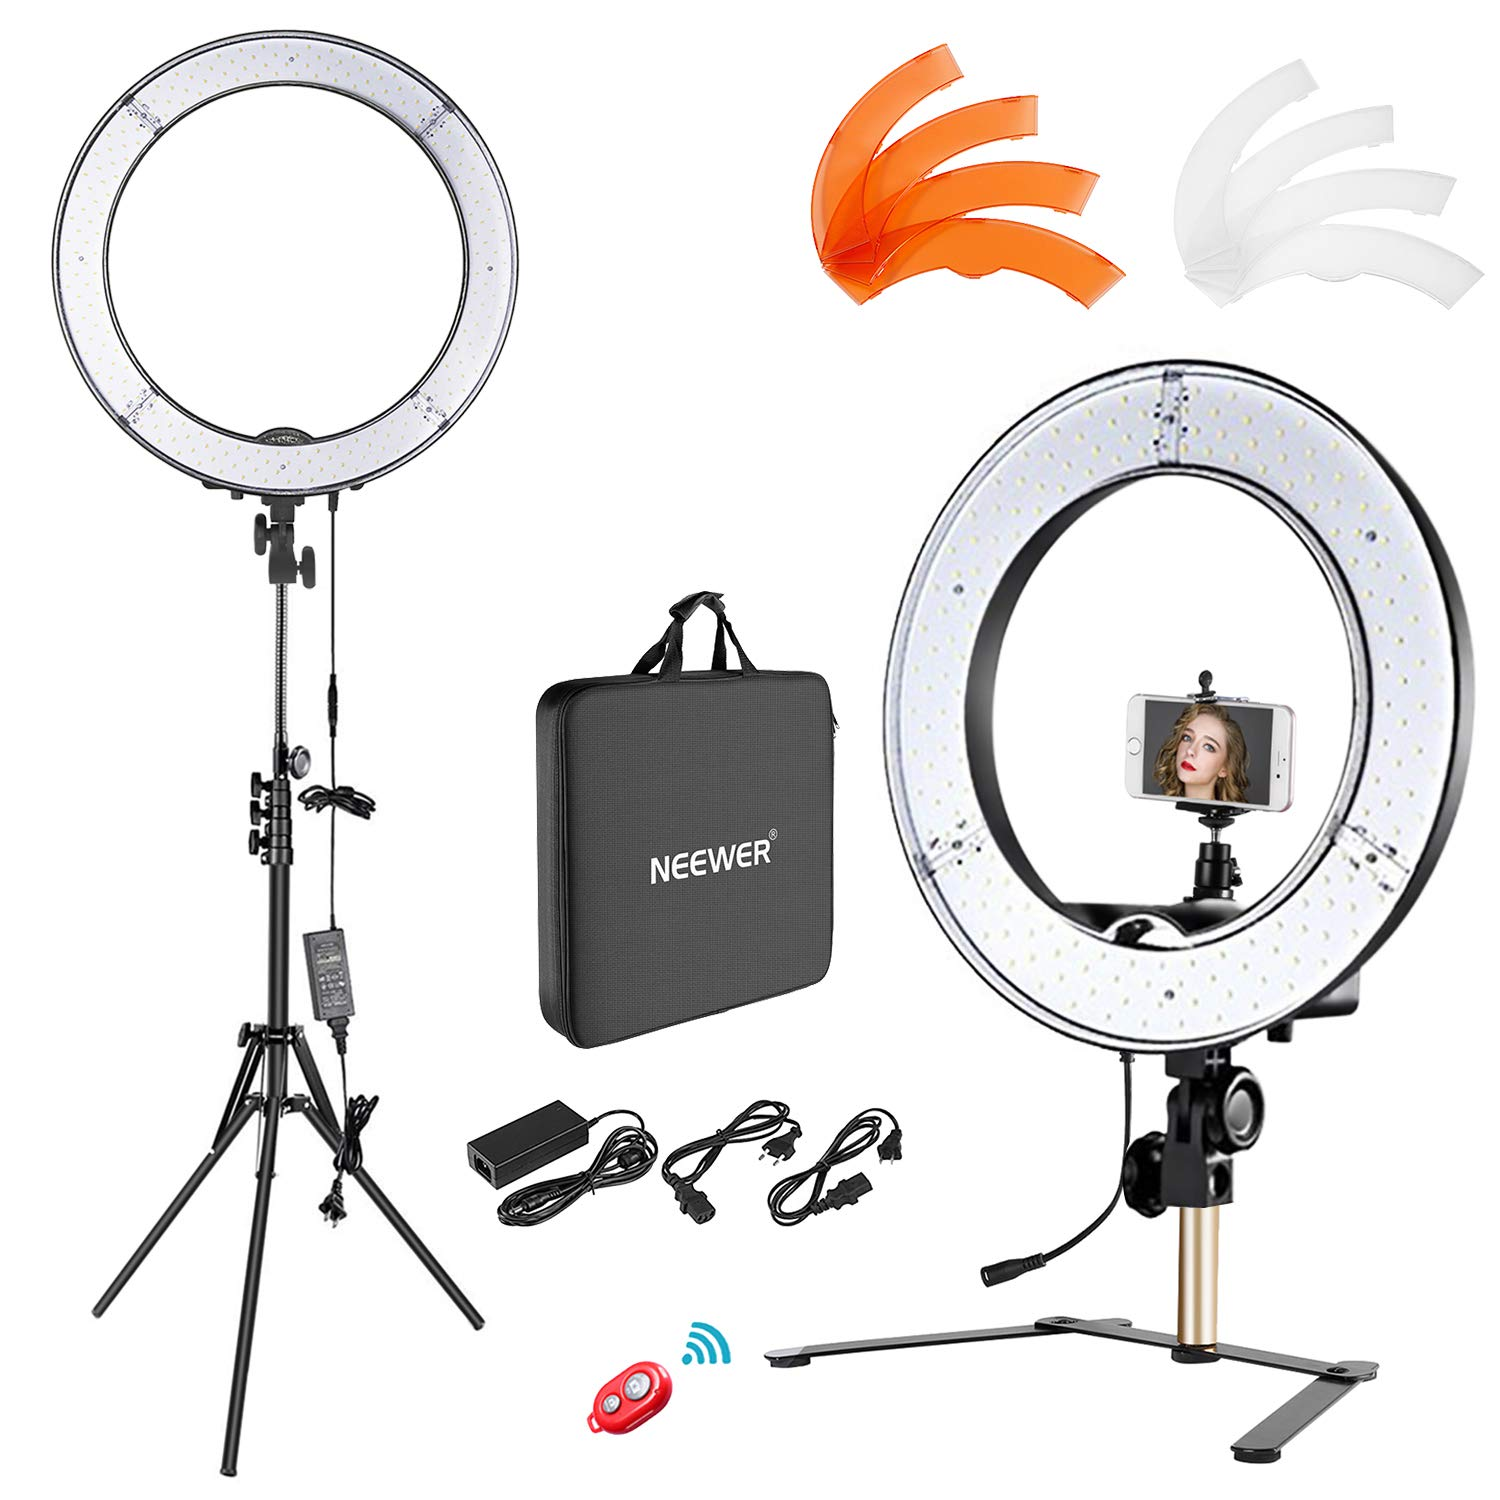 Neewer Desktop and Floor Ring Light Lighting Kit: 18 inches 55W 5500K Dimmable LED Ring Light with Floor Light Stand, Soft Tube, Tabletop Support Stand for Camera, Smartphone Video Make-up Shooting by Neewer